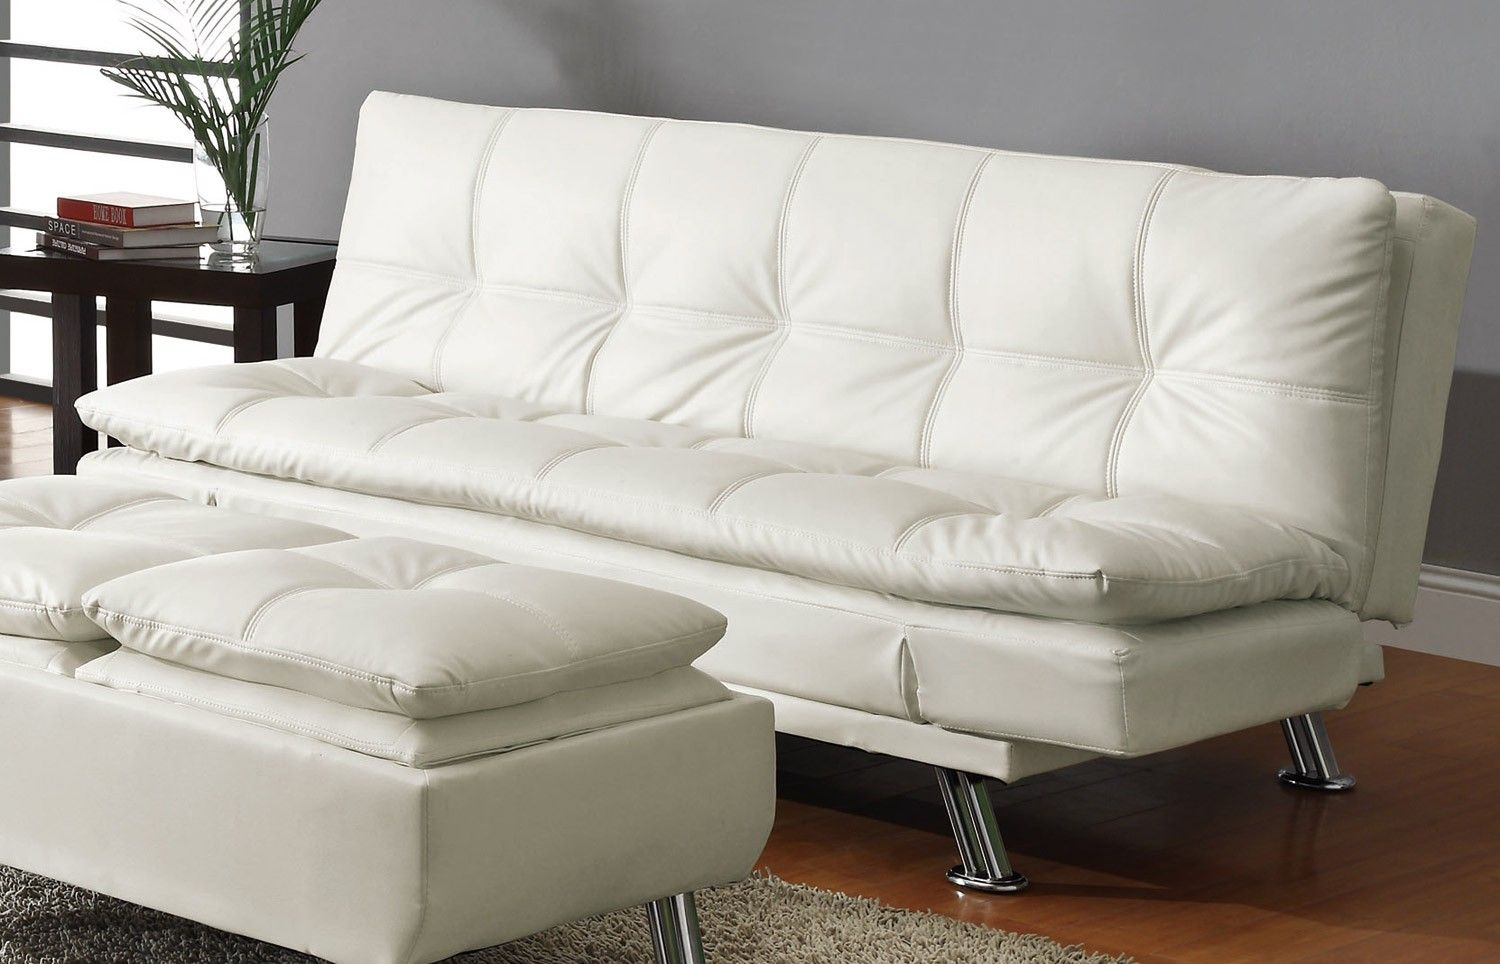 Living Room Sofa You Will Definitely Thank Me After Choosing Your Amazing Choosing Living Room Furniture Design Inspiration